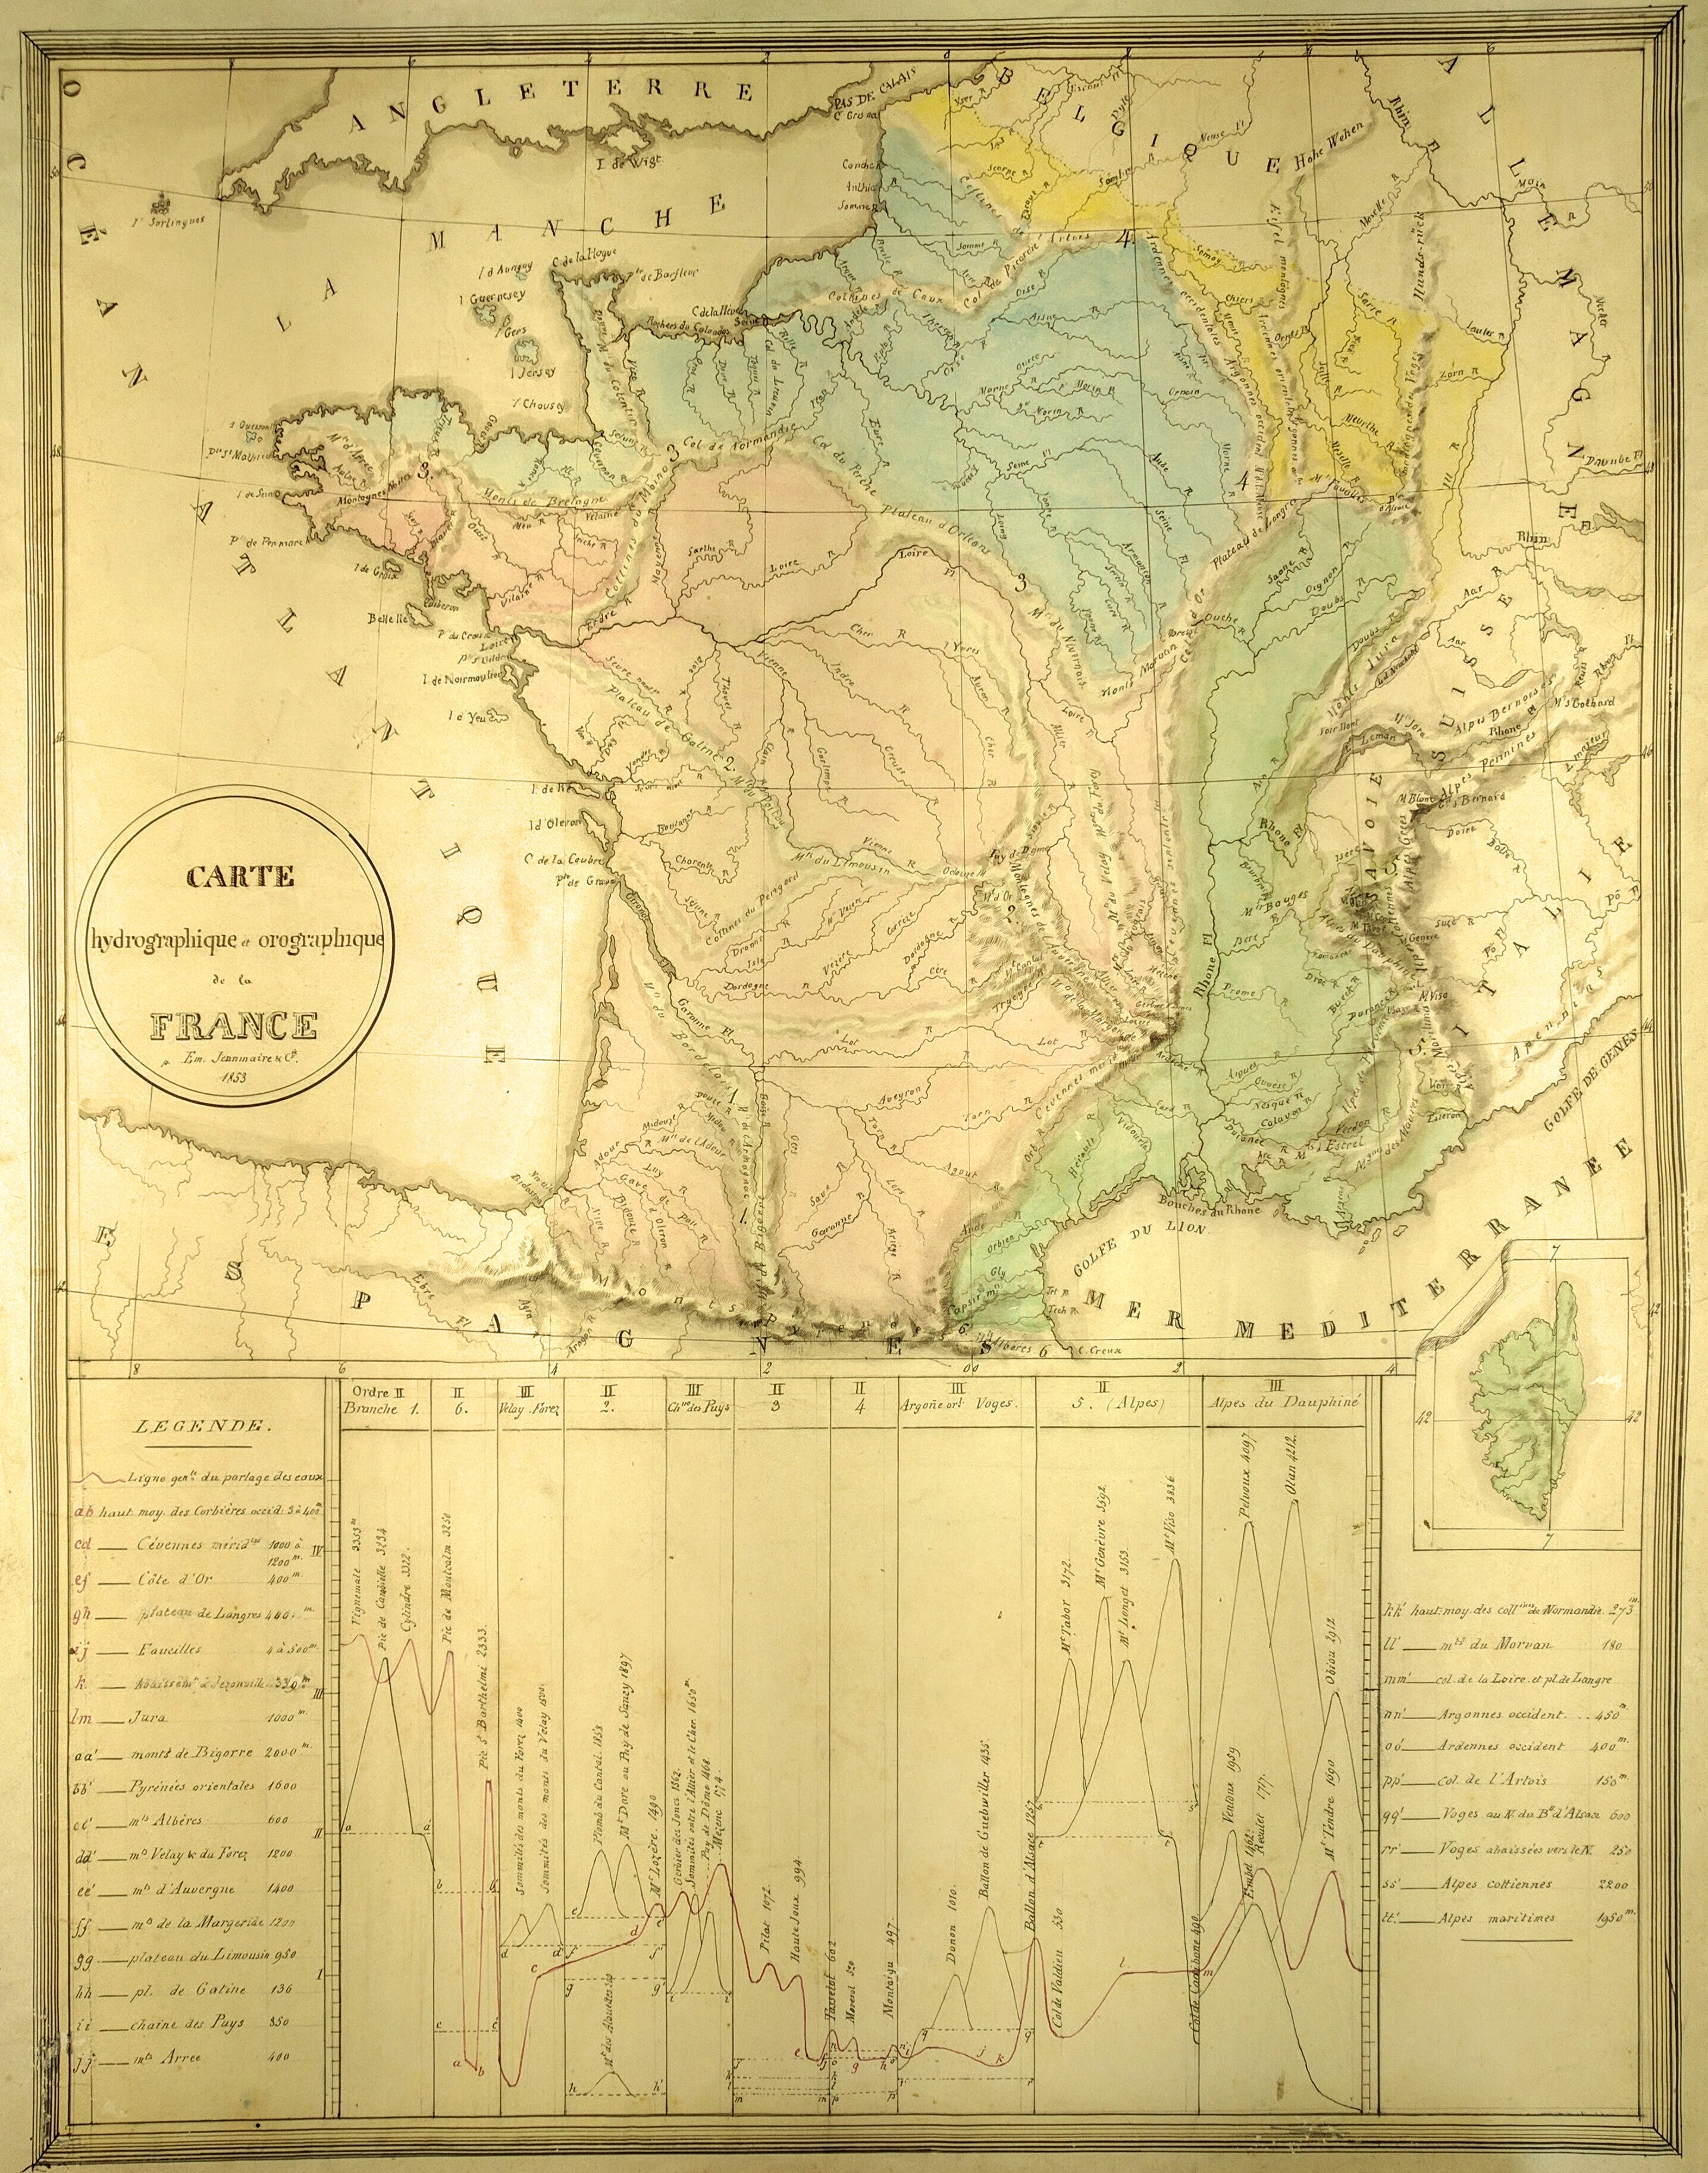 Map Of France With Mountains.Manuscript French Mountains Chart Peter Roehrich